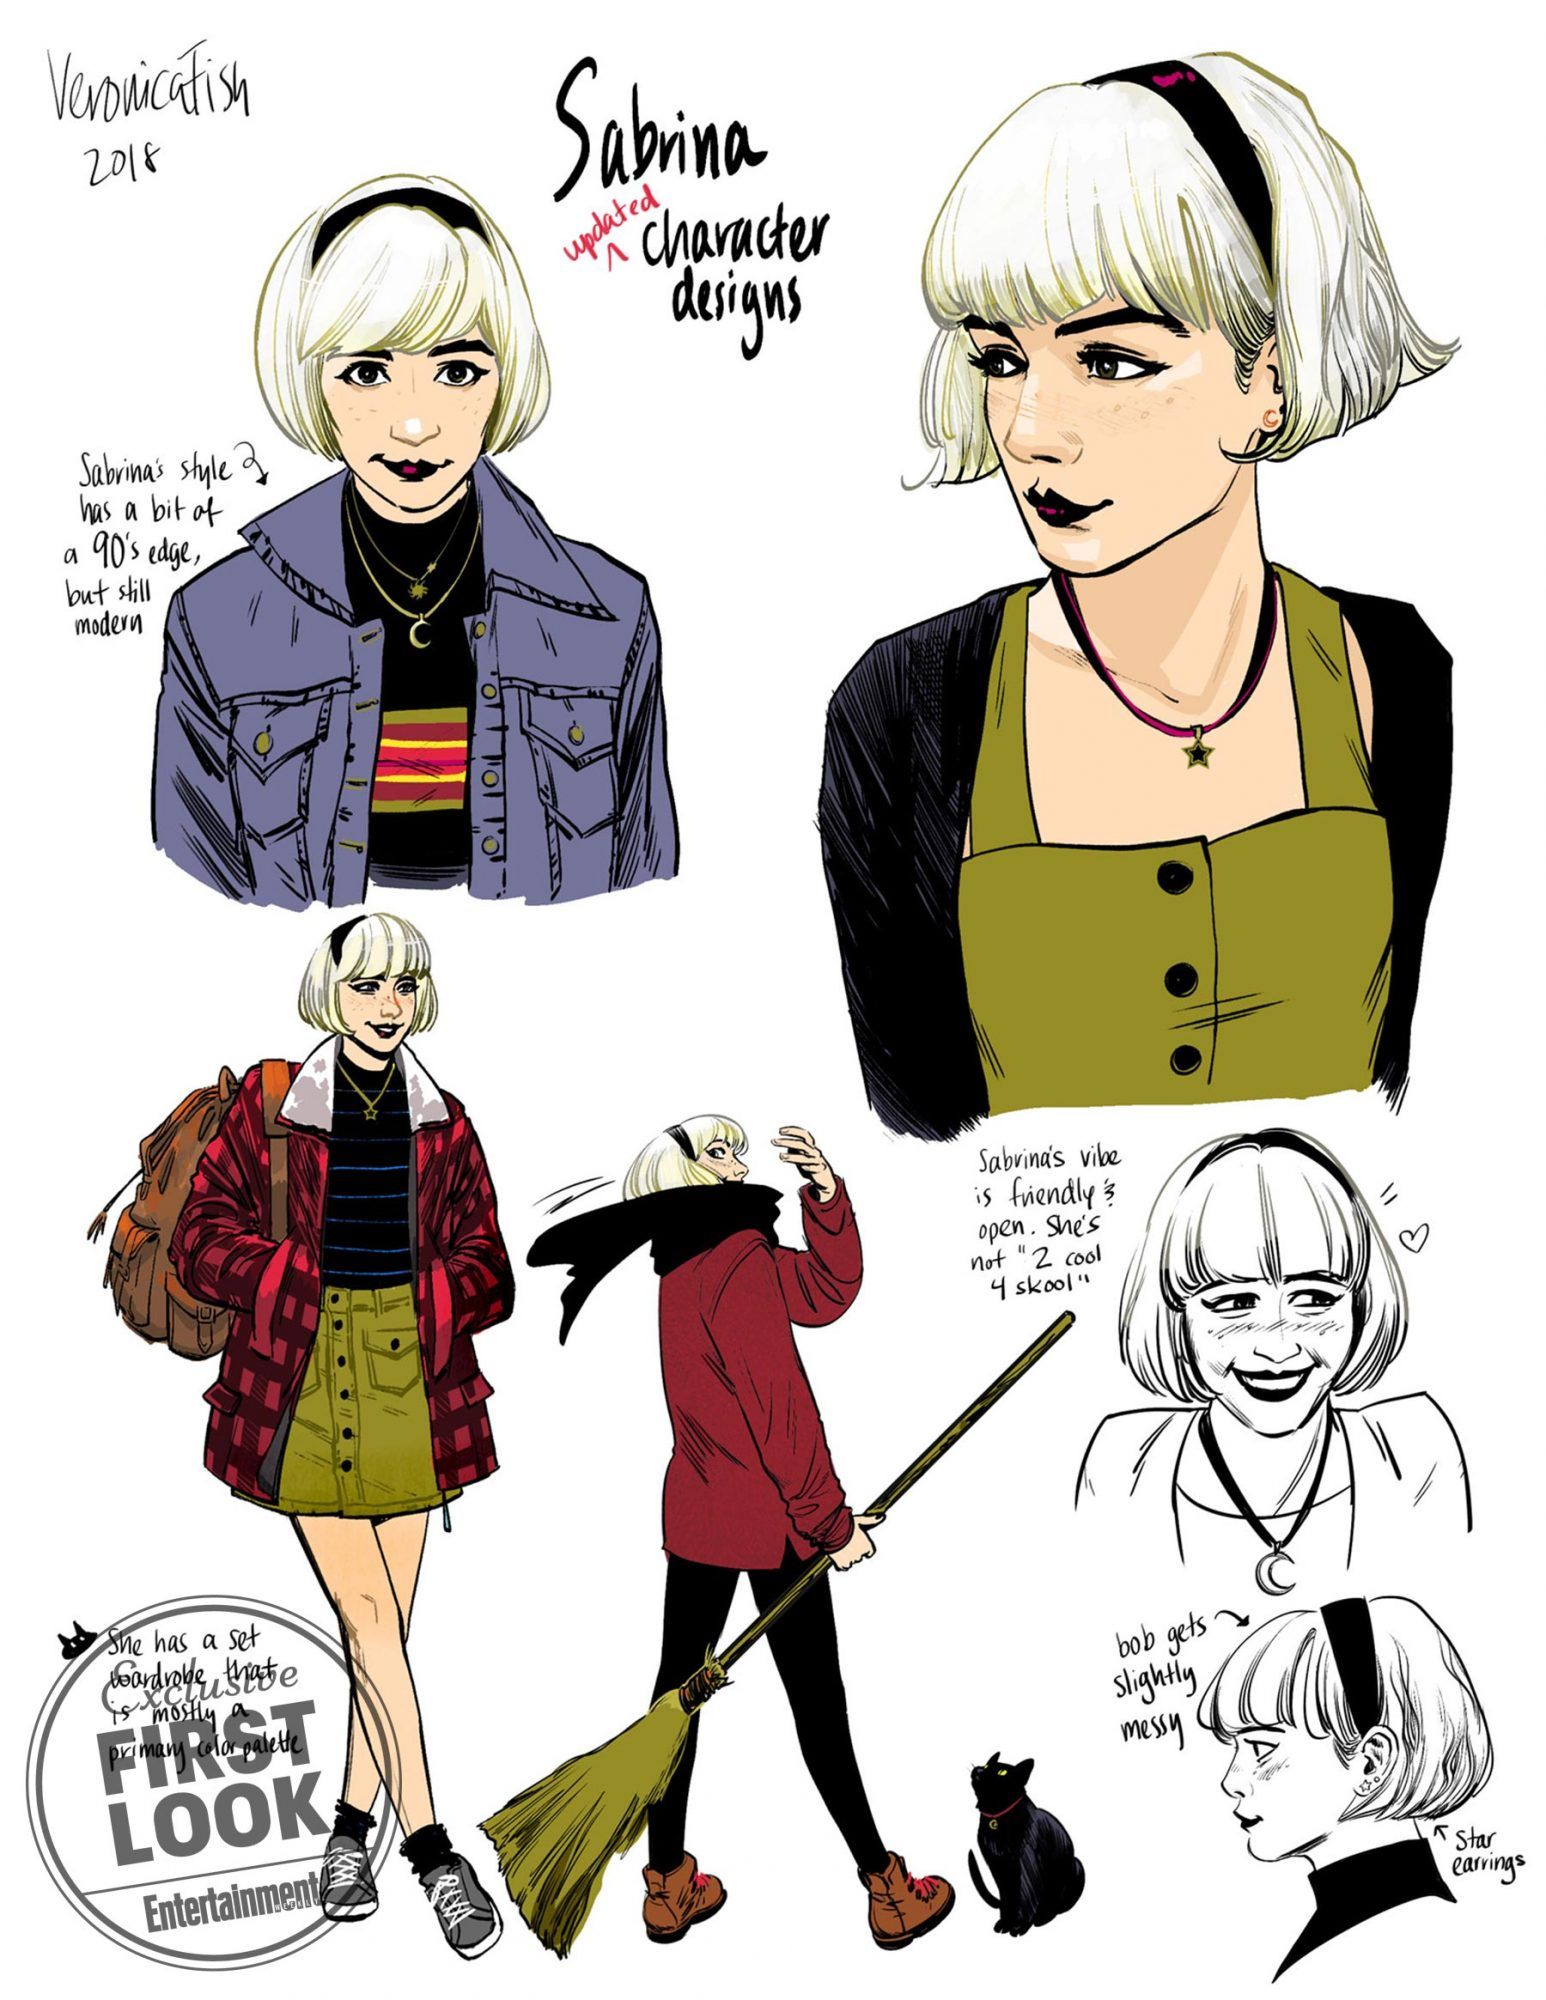 Sabrina The Teenage Witch Gets New Non Chilling Comic Series Ew Com